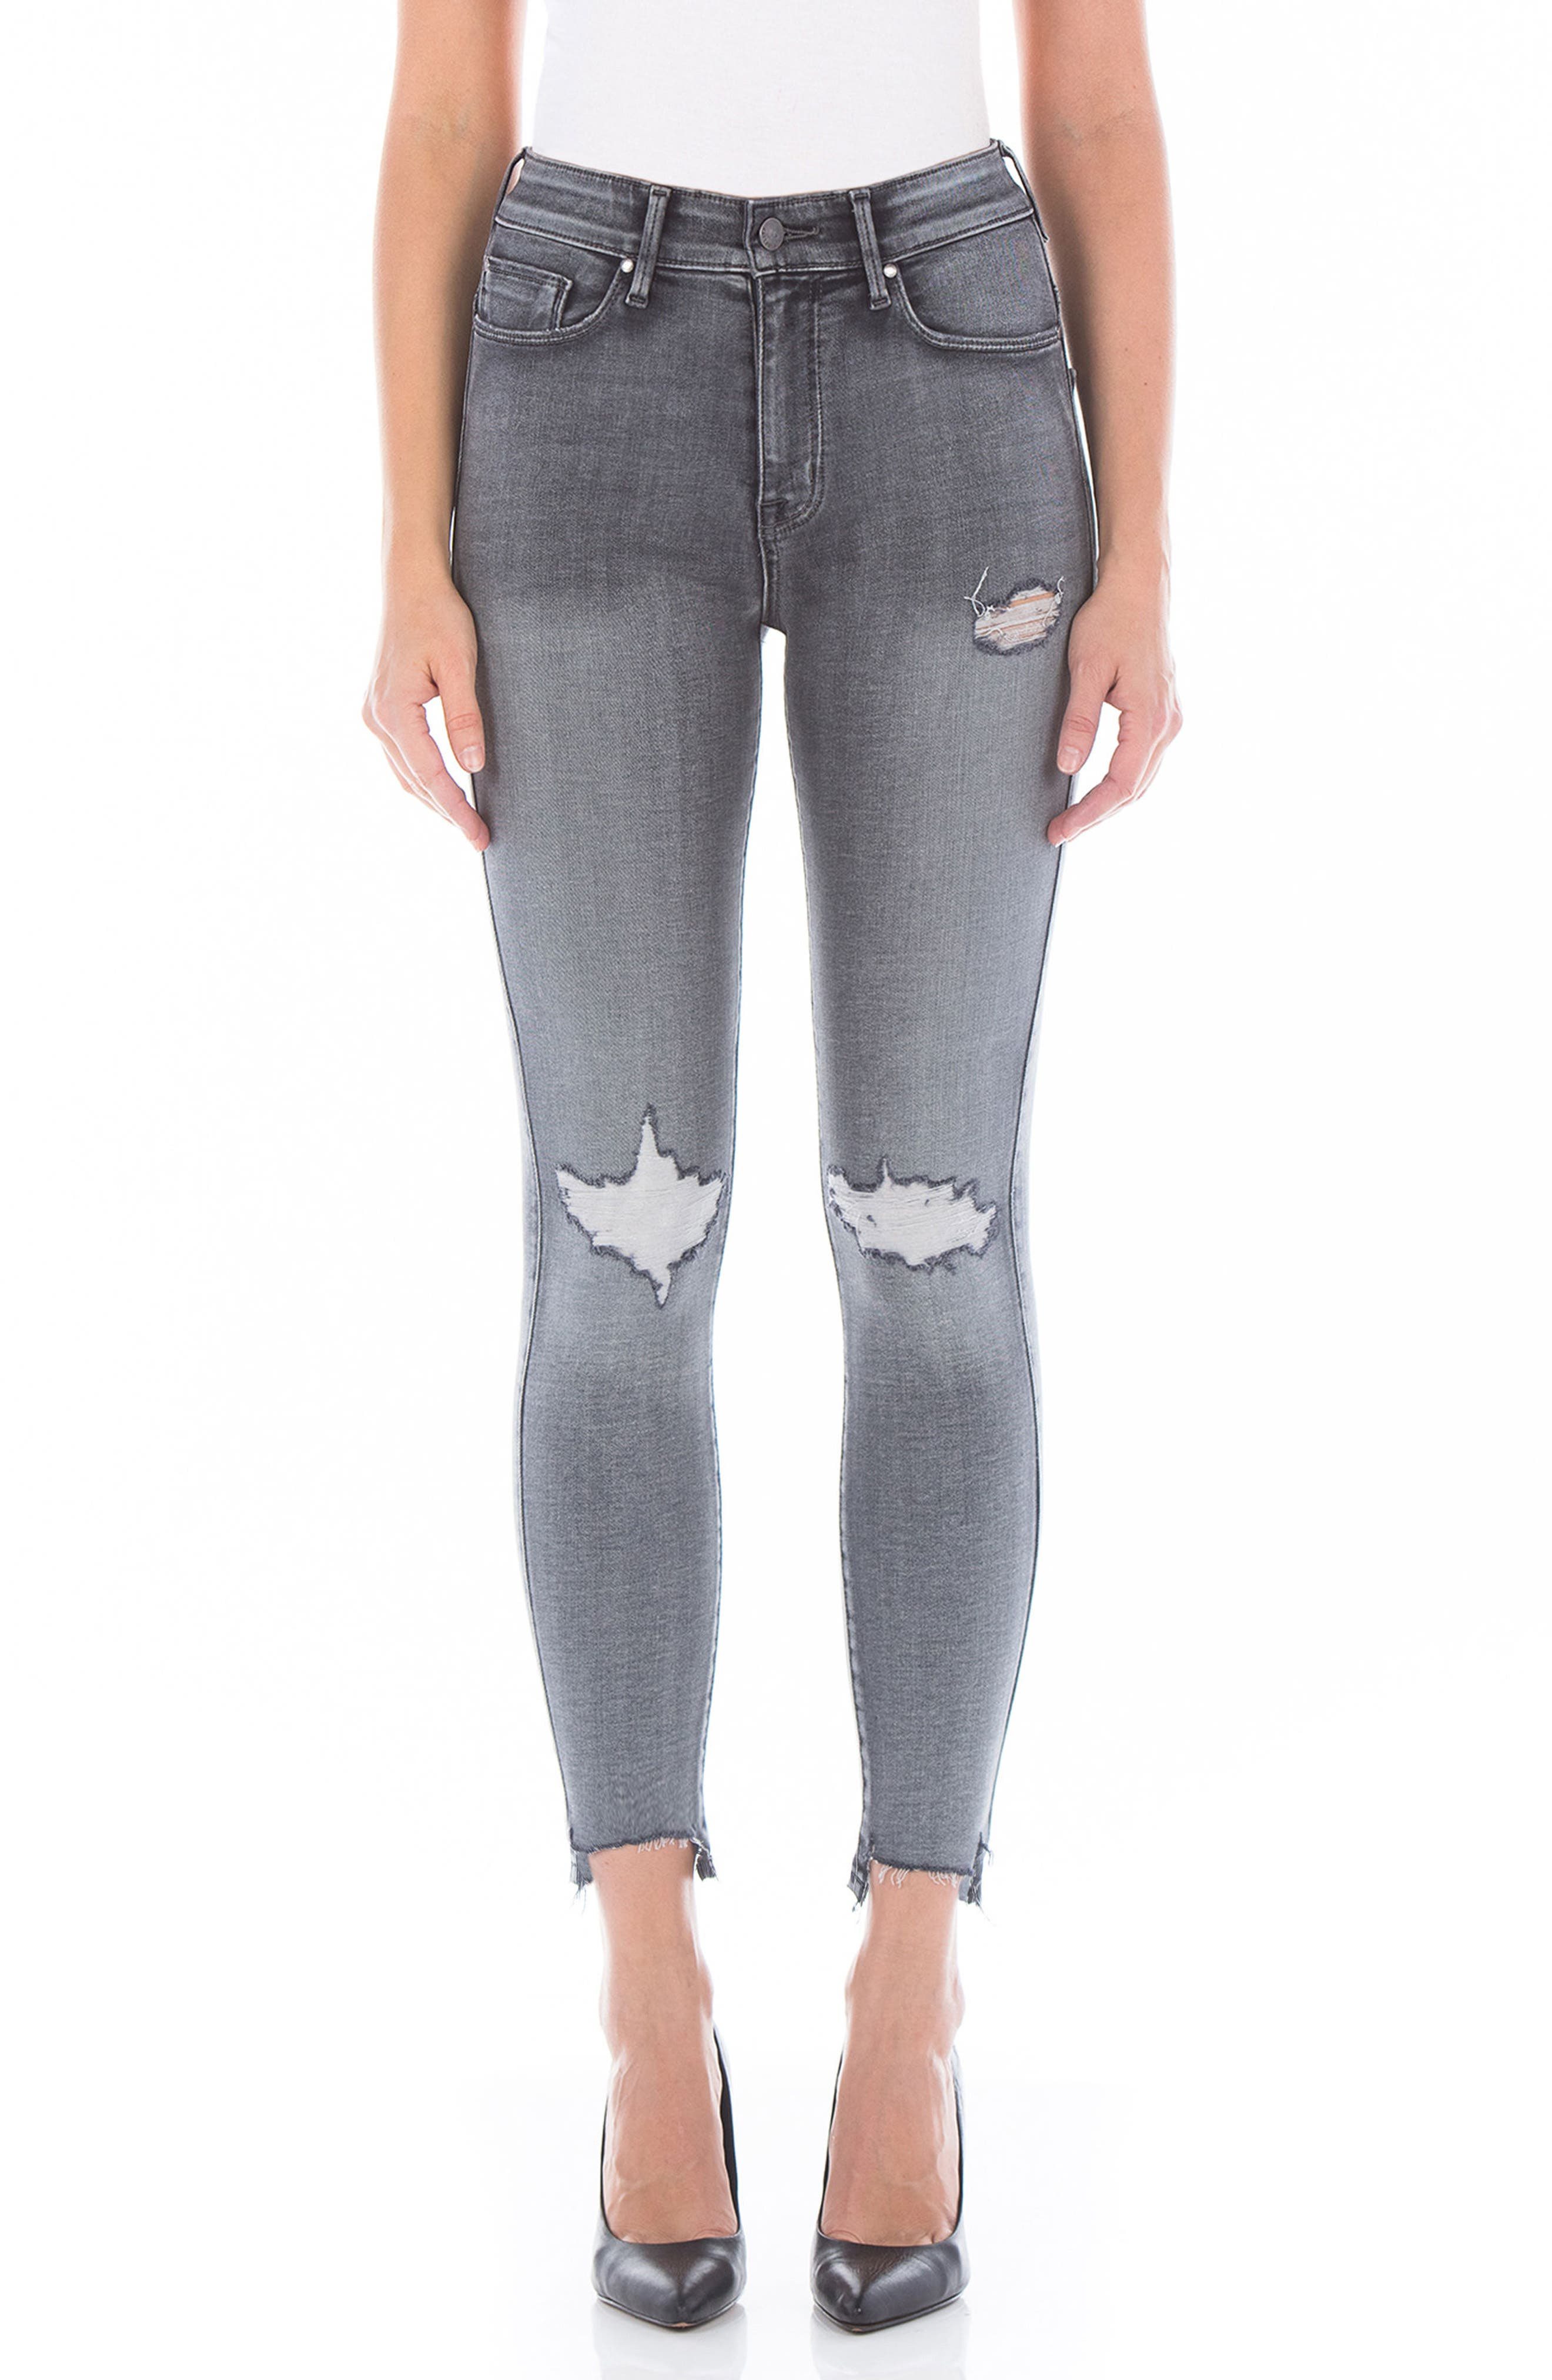 Main Image - Fidelity Denim Luna High Waist Distressed Skinny Jeans (Wiseman)